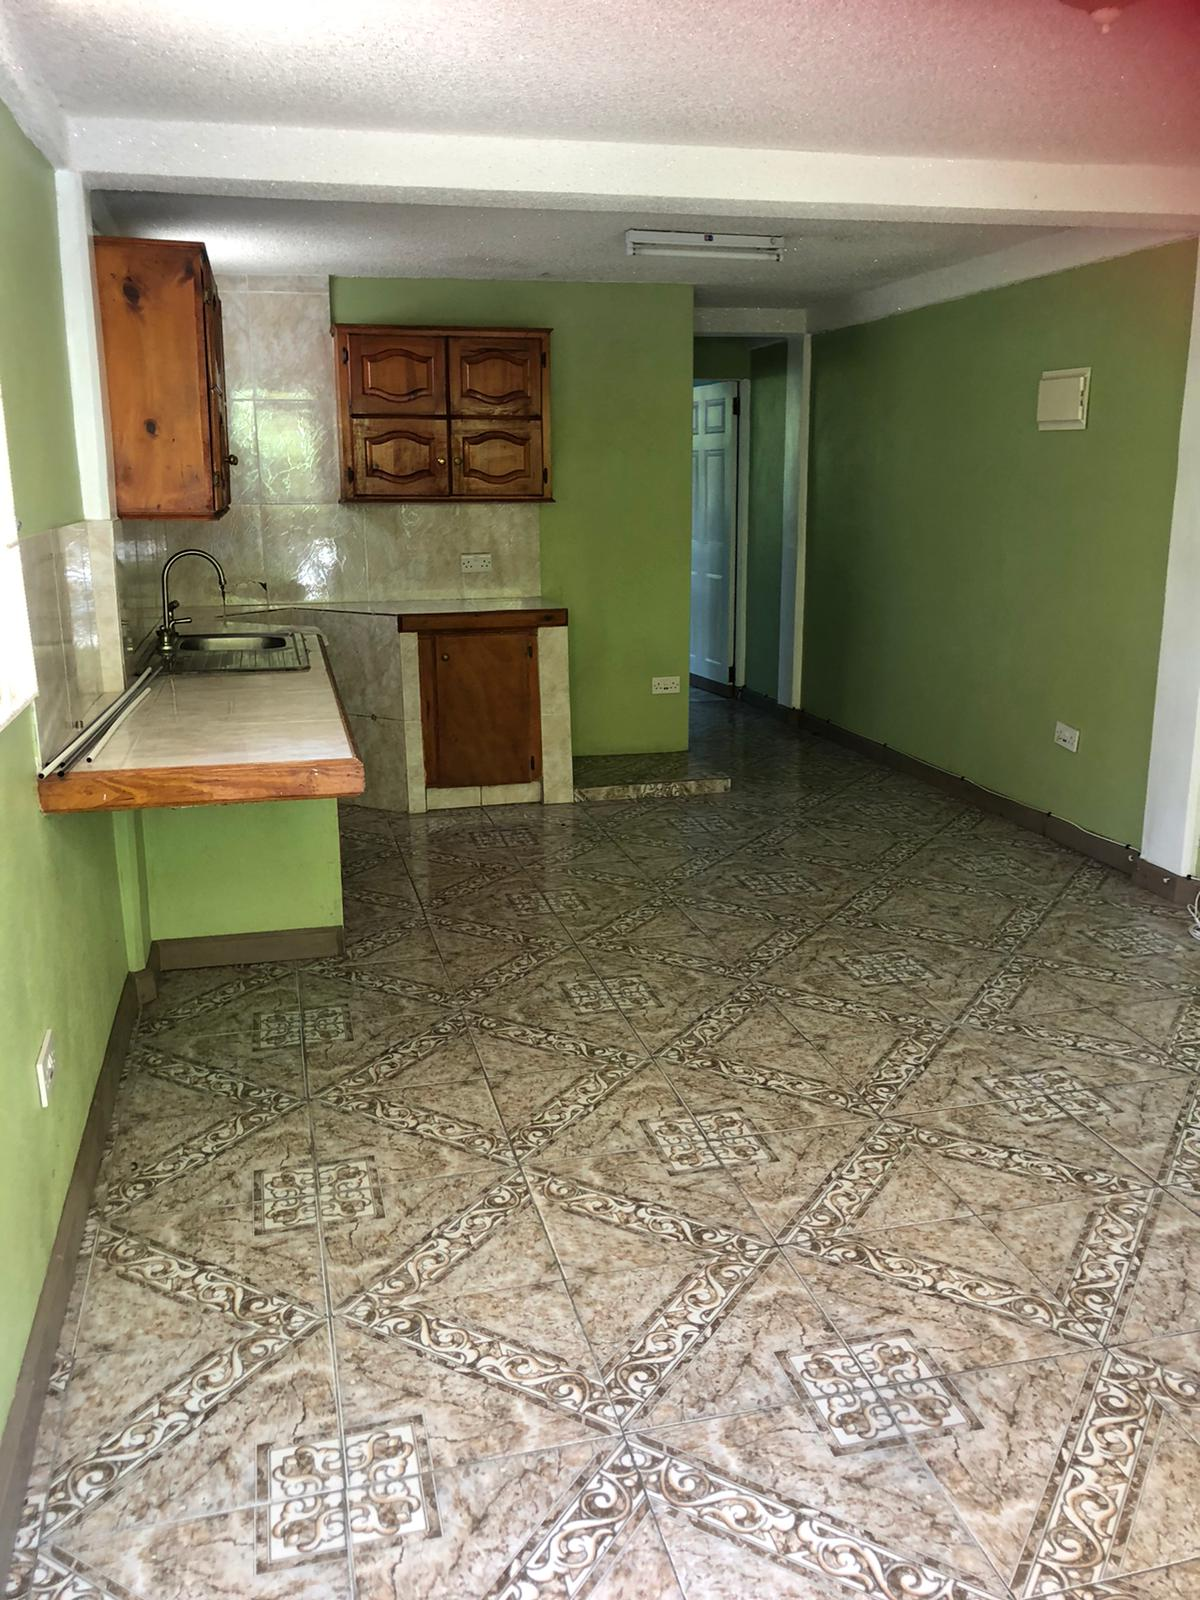 Unfurnished Apartment For Rent In Loubiere (RENTED OUT)